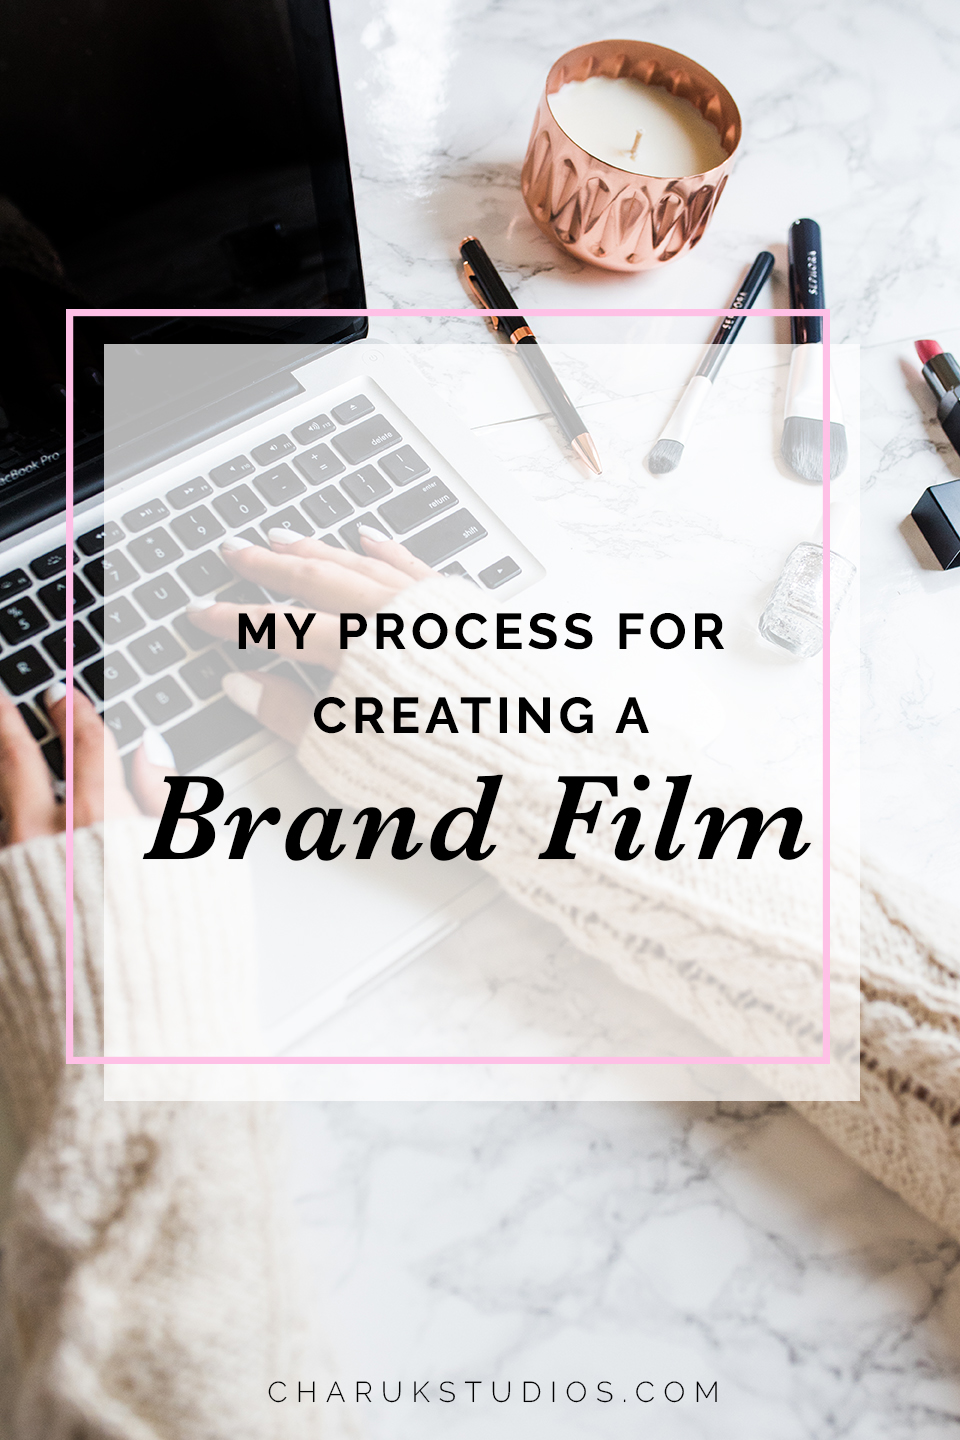 My Process for Creating a Brand Film by Charuk Studios